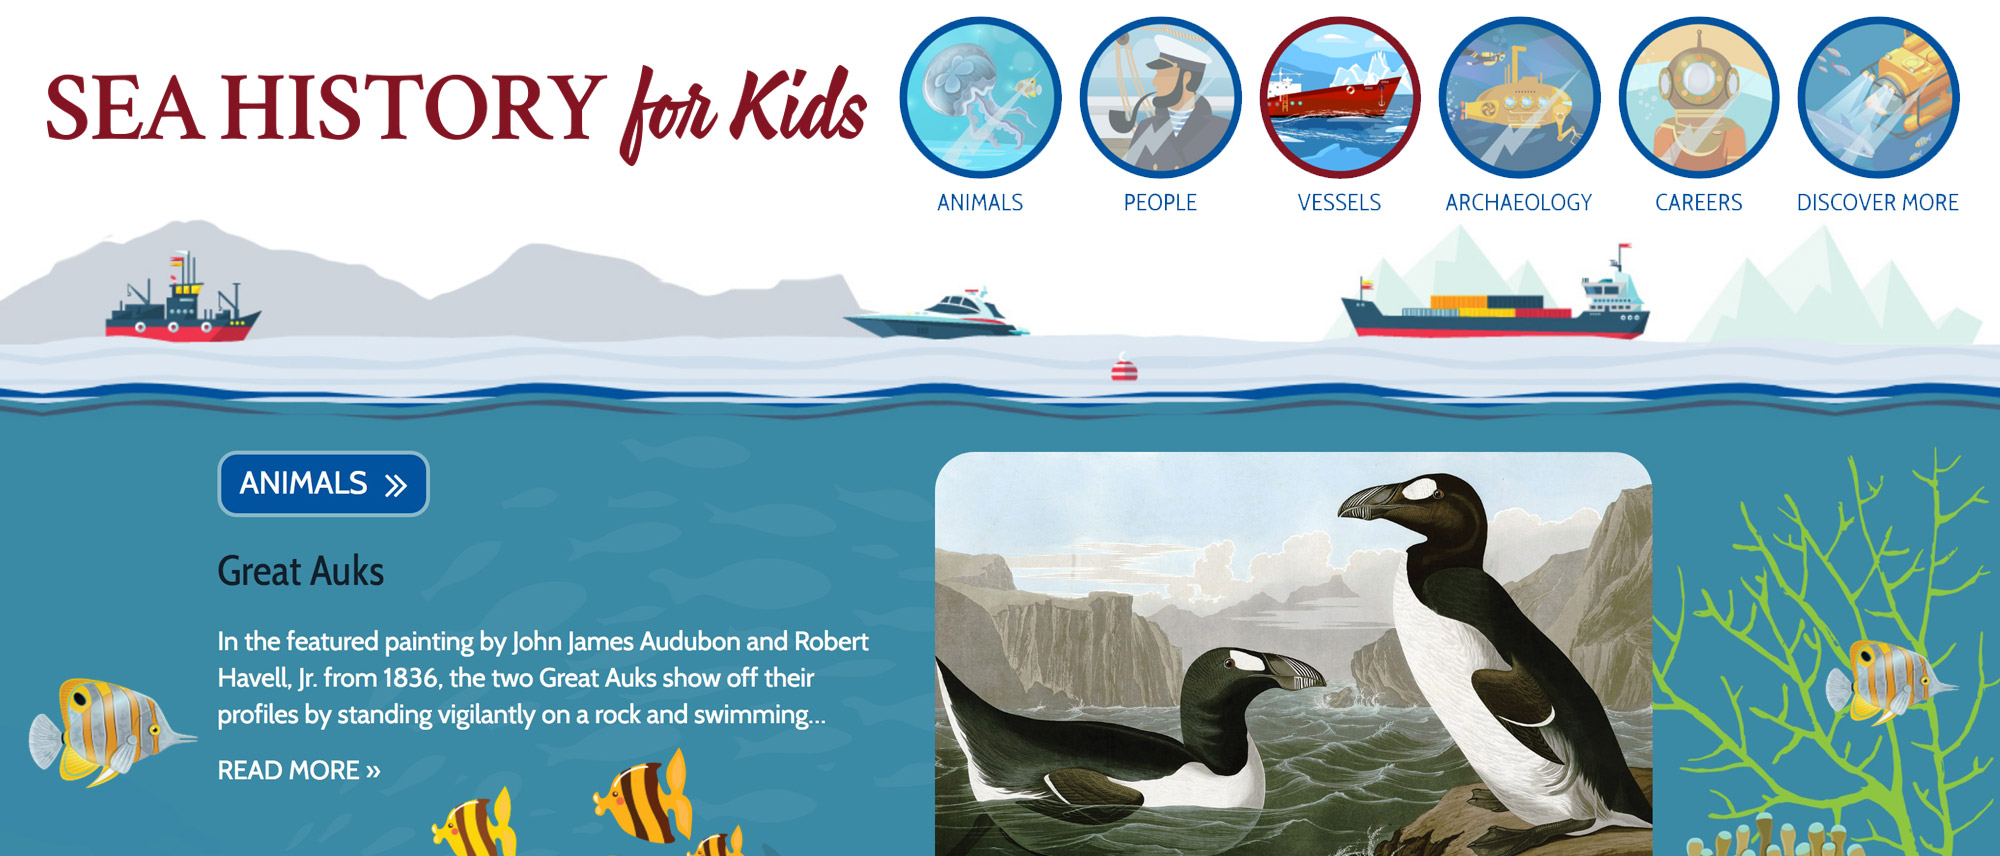 Sea History for Kids